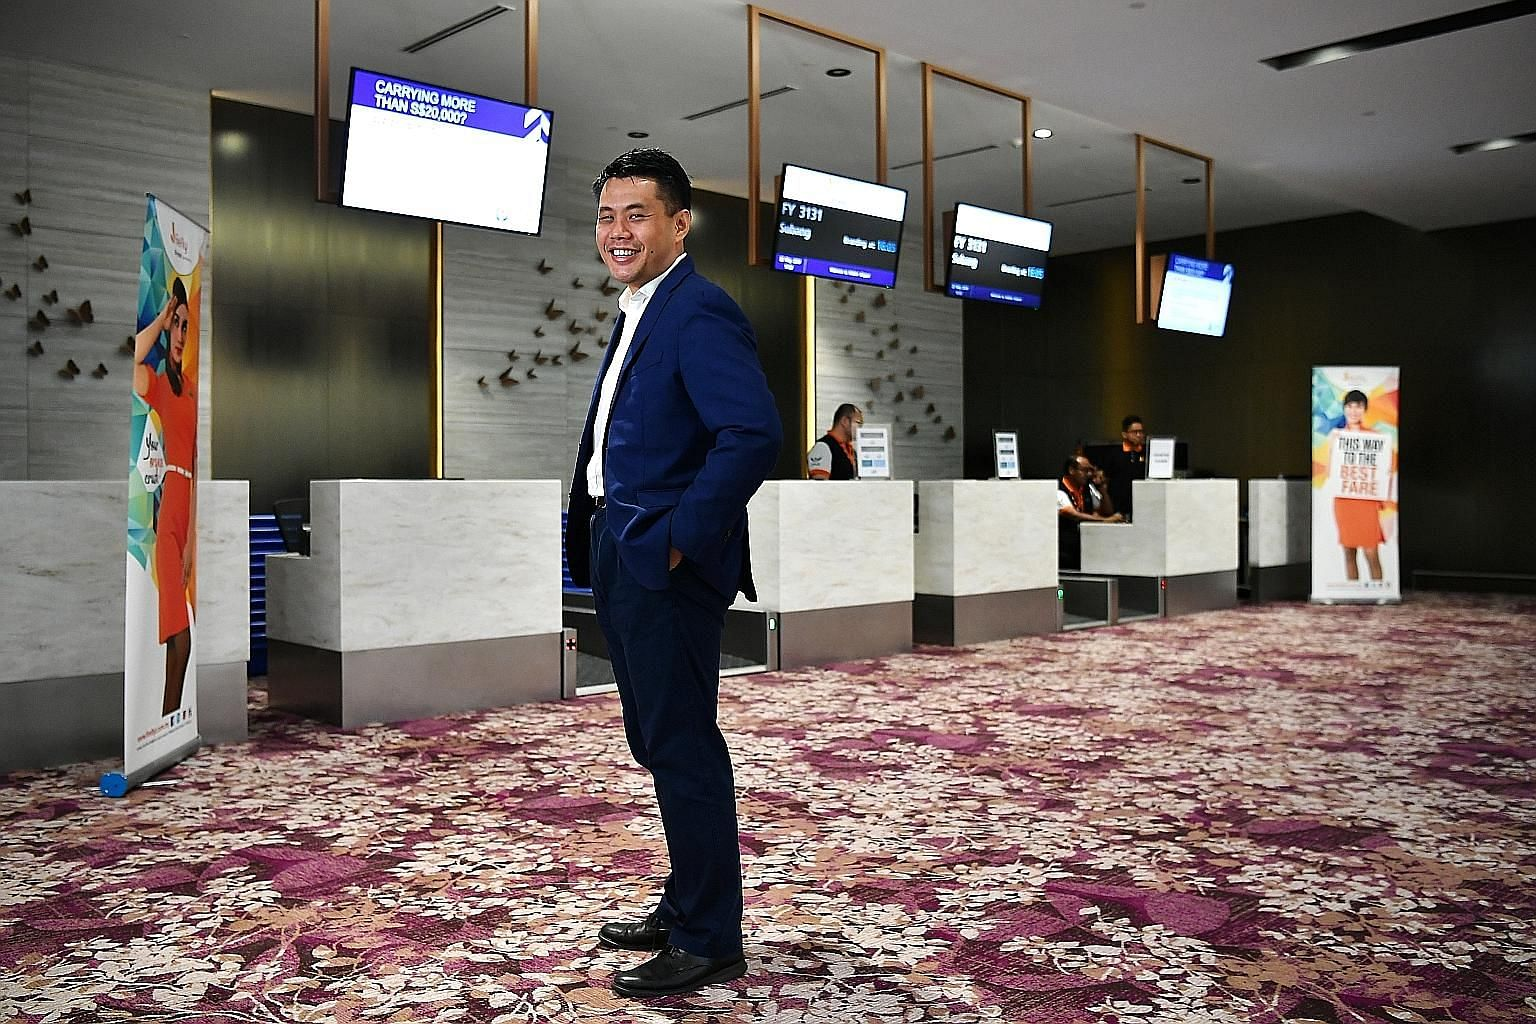 Firefly chief executive Philip See says his airline's Subang-Seletar trip takes less than two hours point to point, while flights between Kuala Lumpur International Airport and Changi Airport may take several hours.